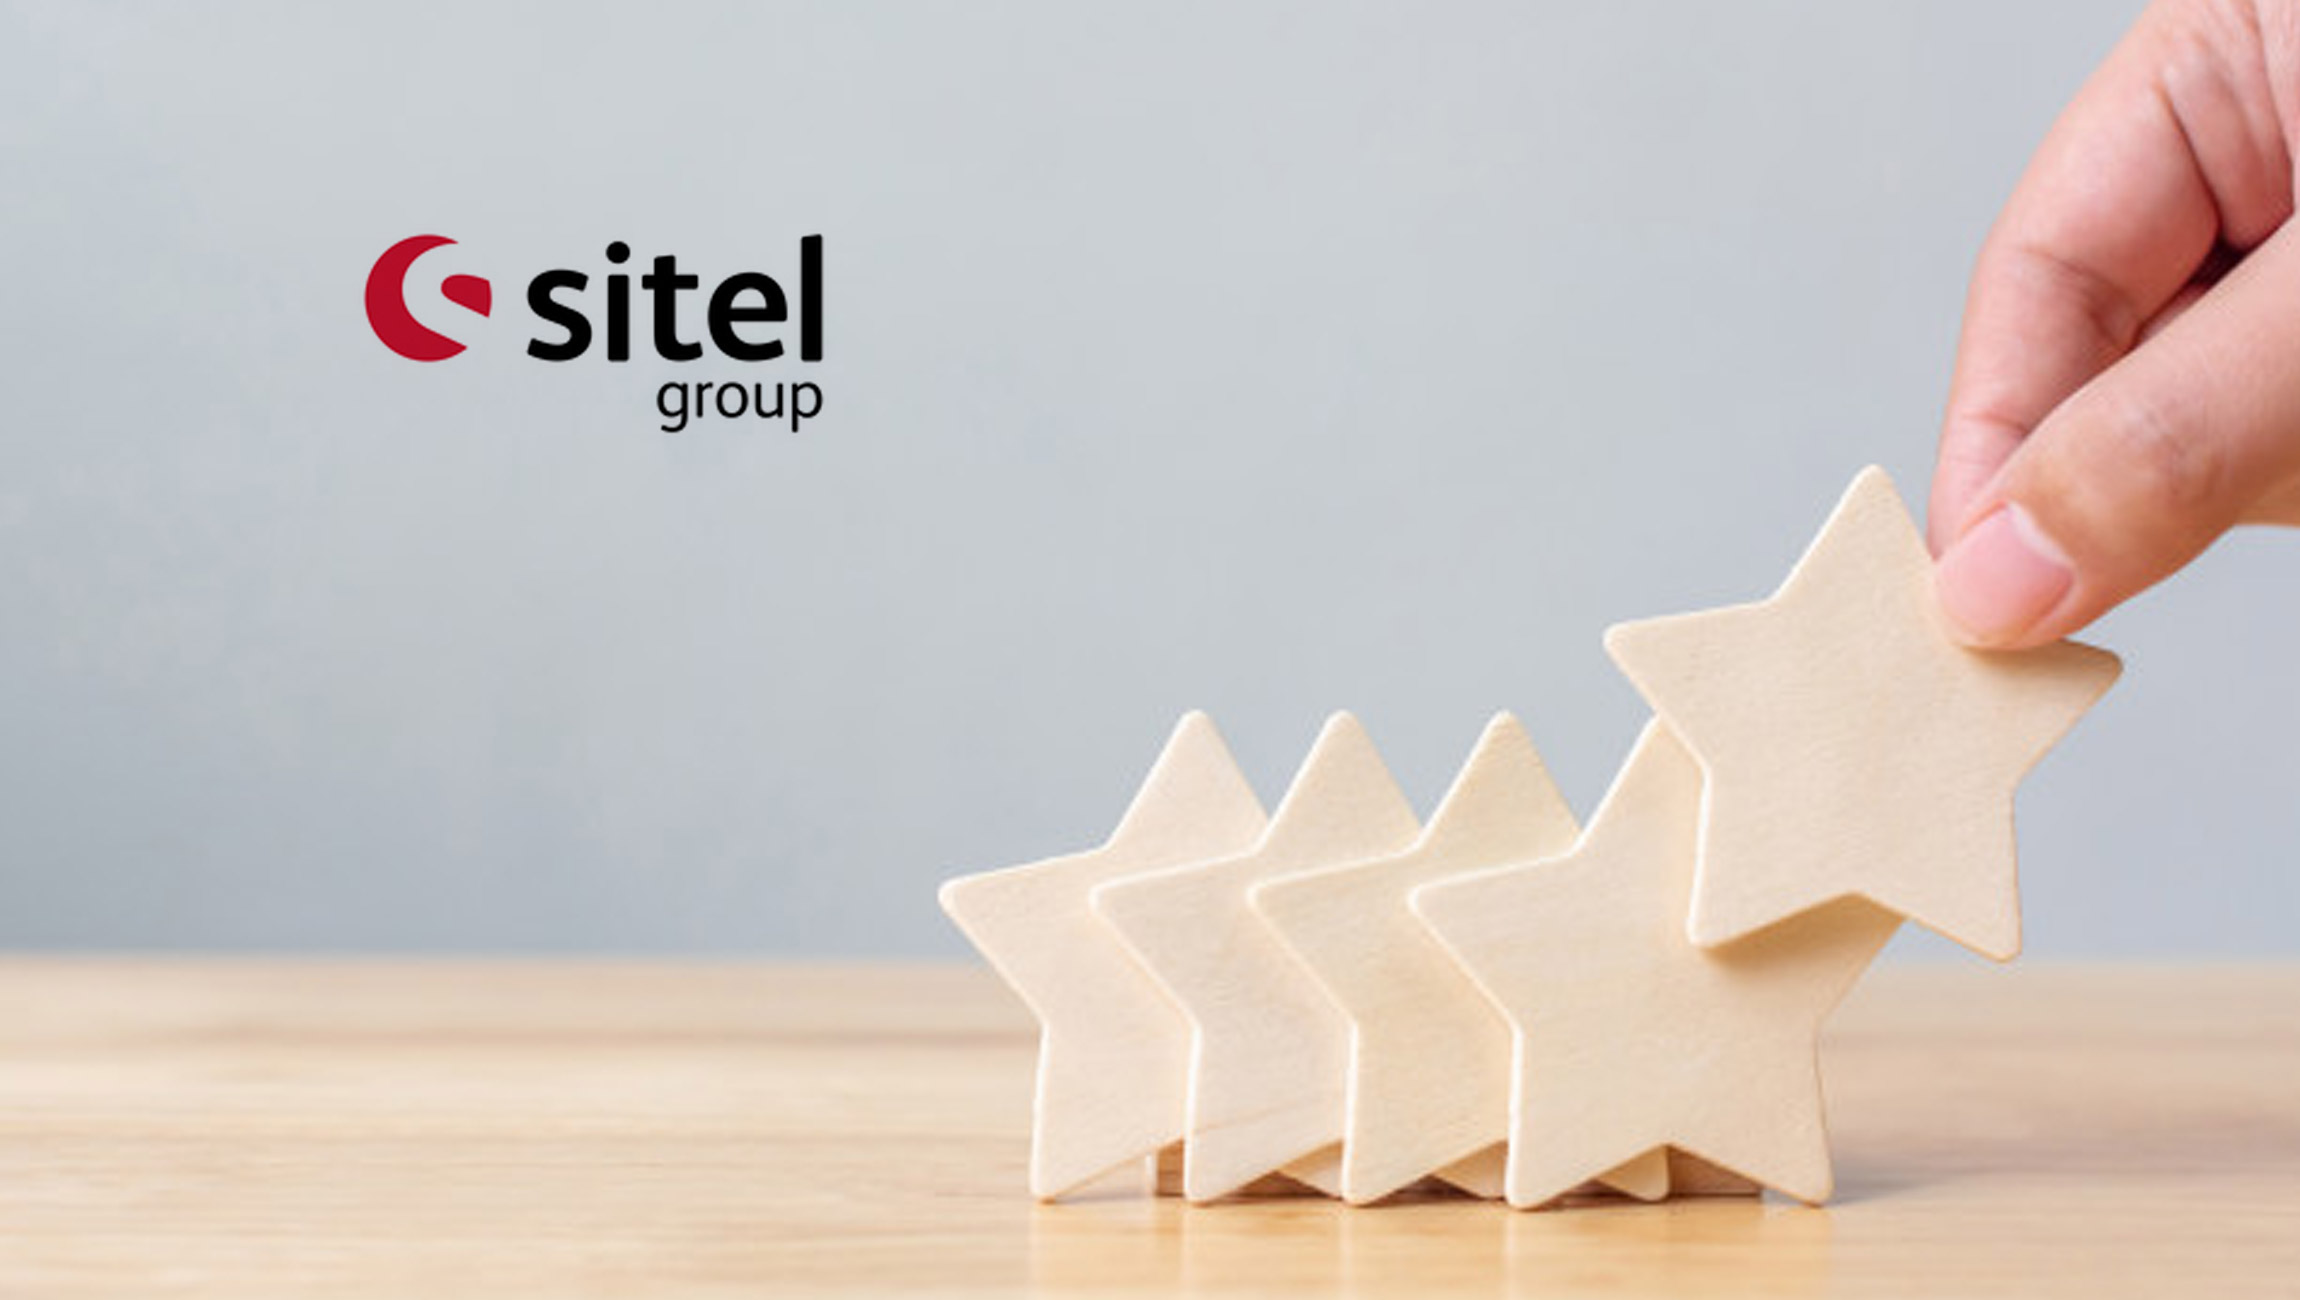 Sitel Group® Research Reveals Poor Customer Experience Leads to Customer Churn